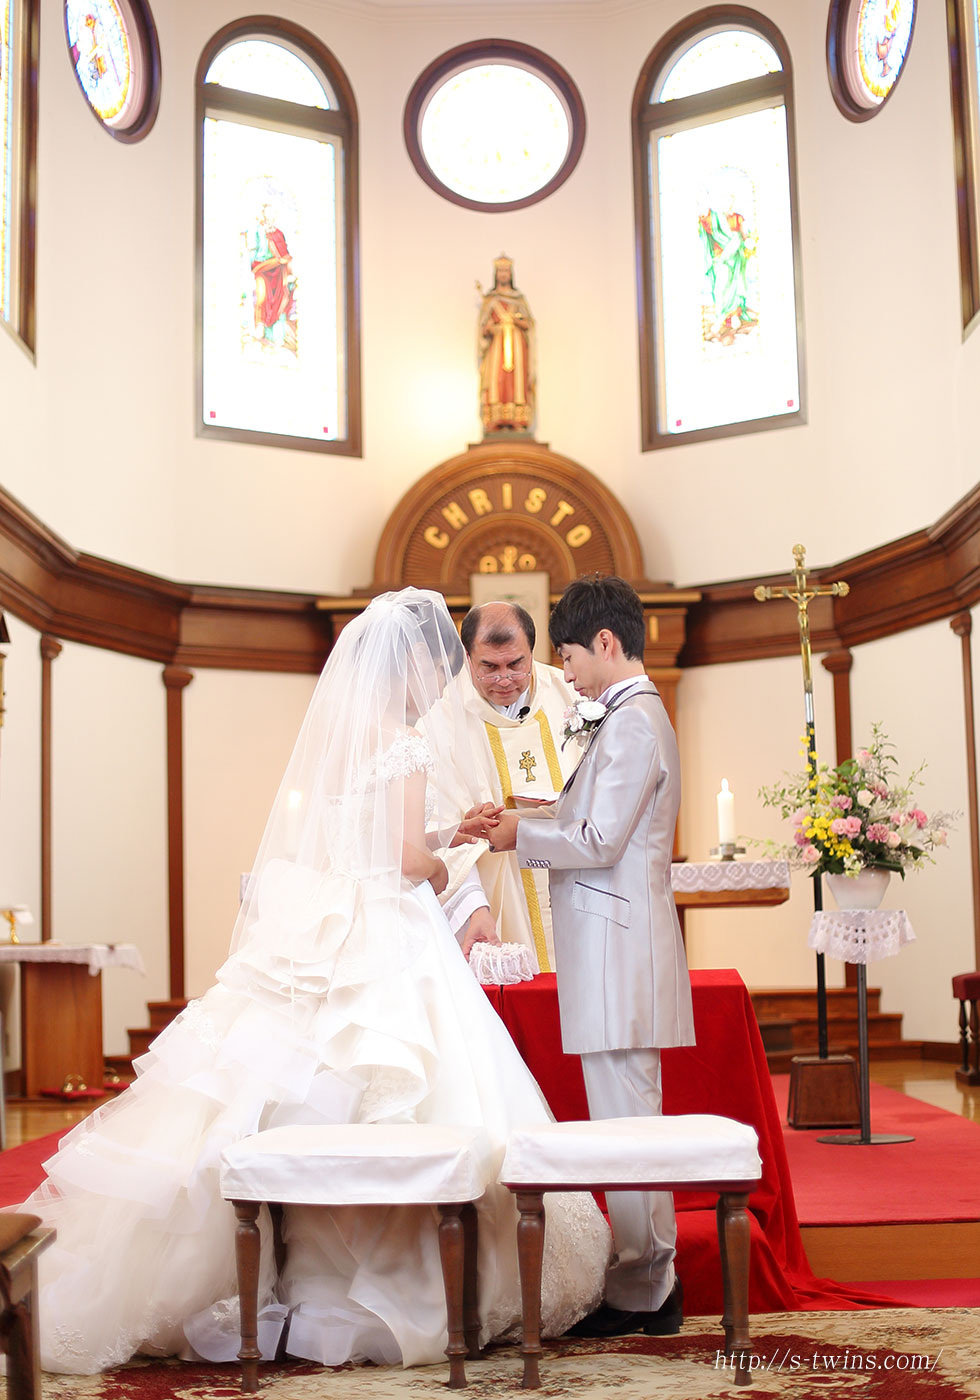 16sep8wedding_ikarashitei_yui06